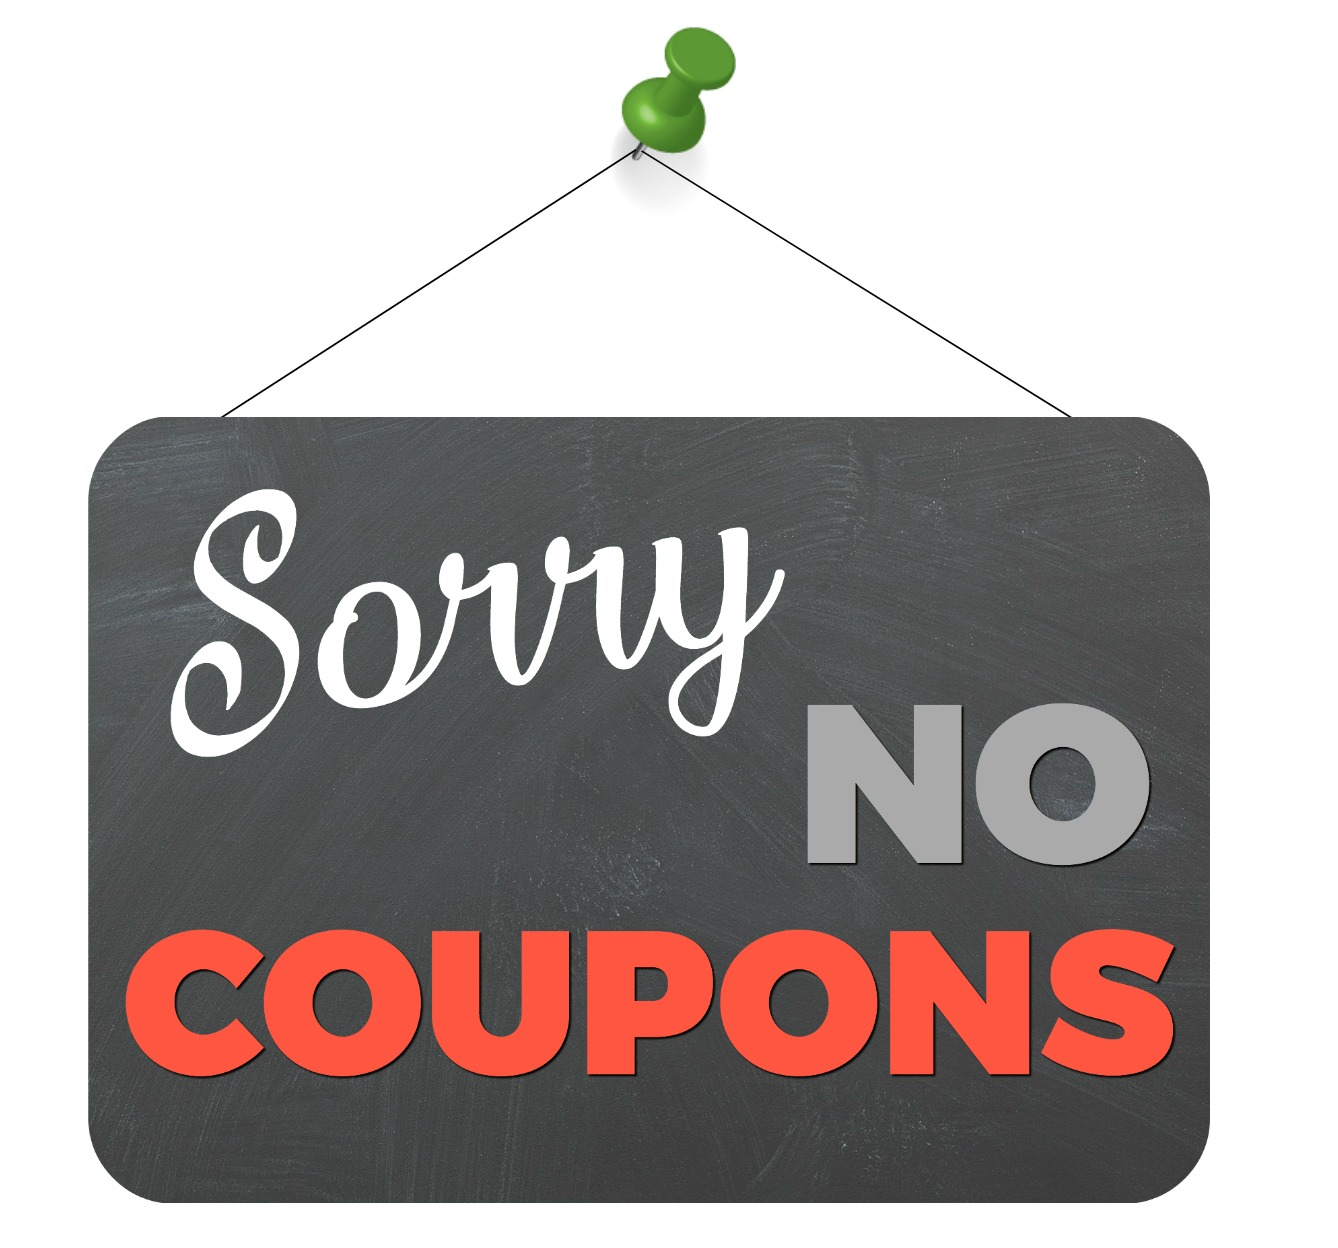 Sunday Coupon Preview For 4/21 - NO INSERTS!